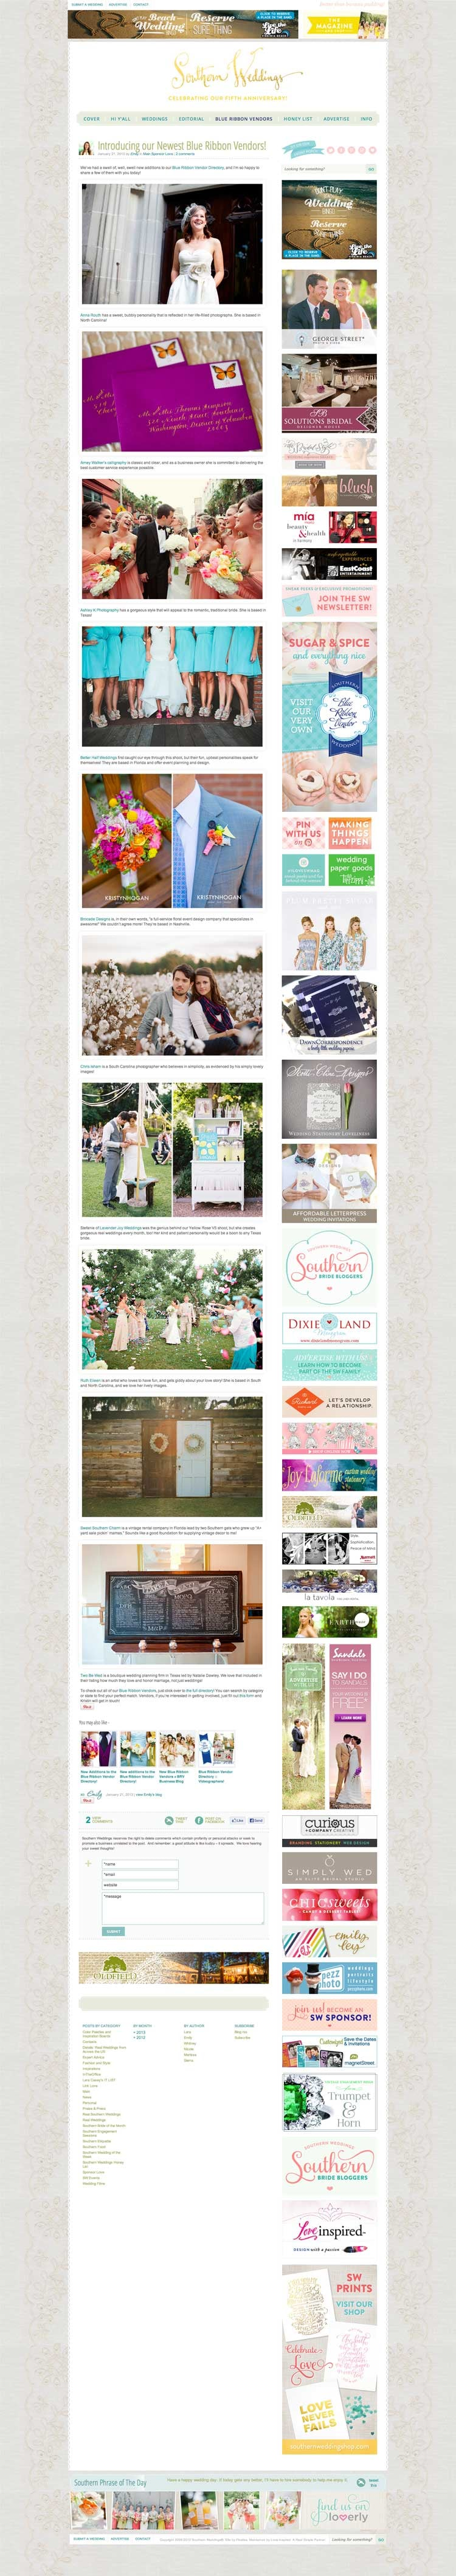 21-Introducing-our-Newest-Blue-Ribbon-Vendors--Southern-Weddings-Magazine